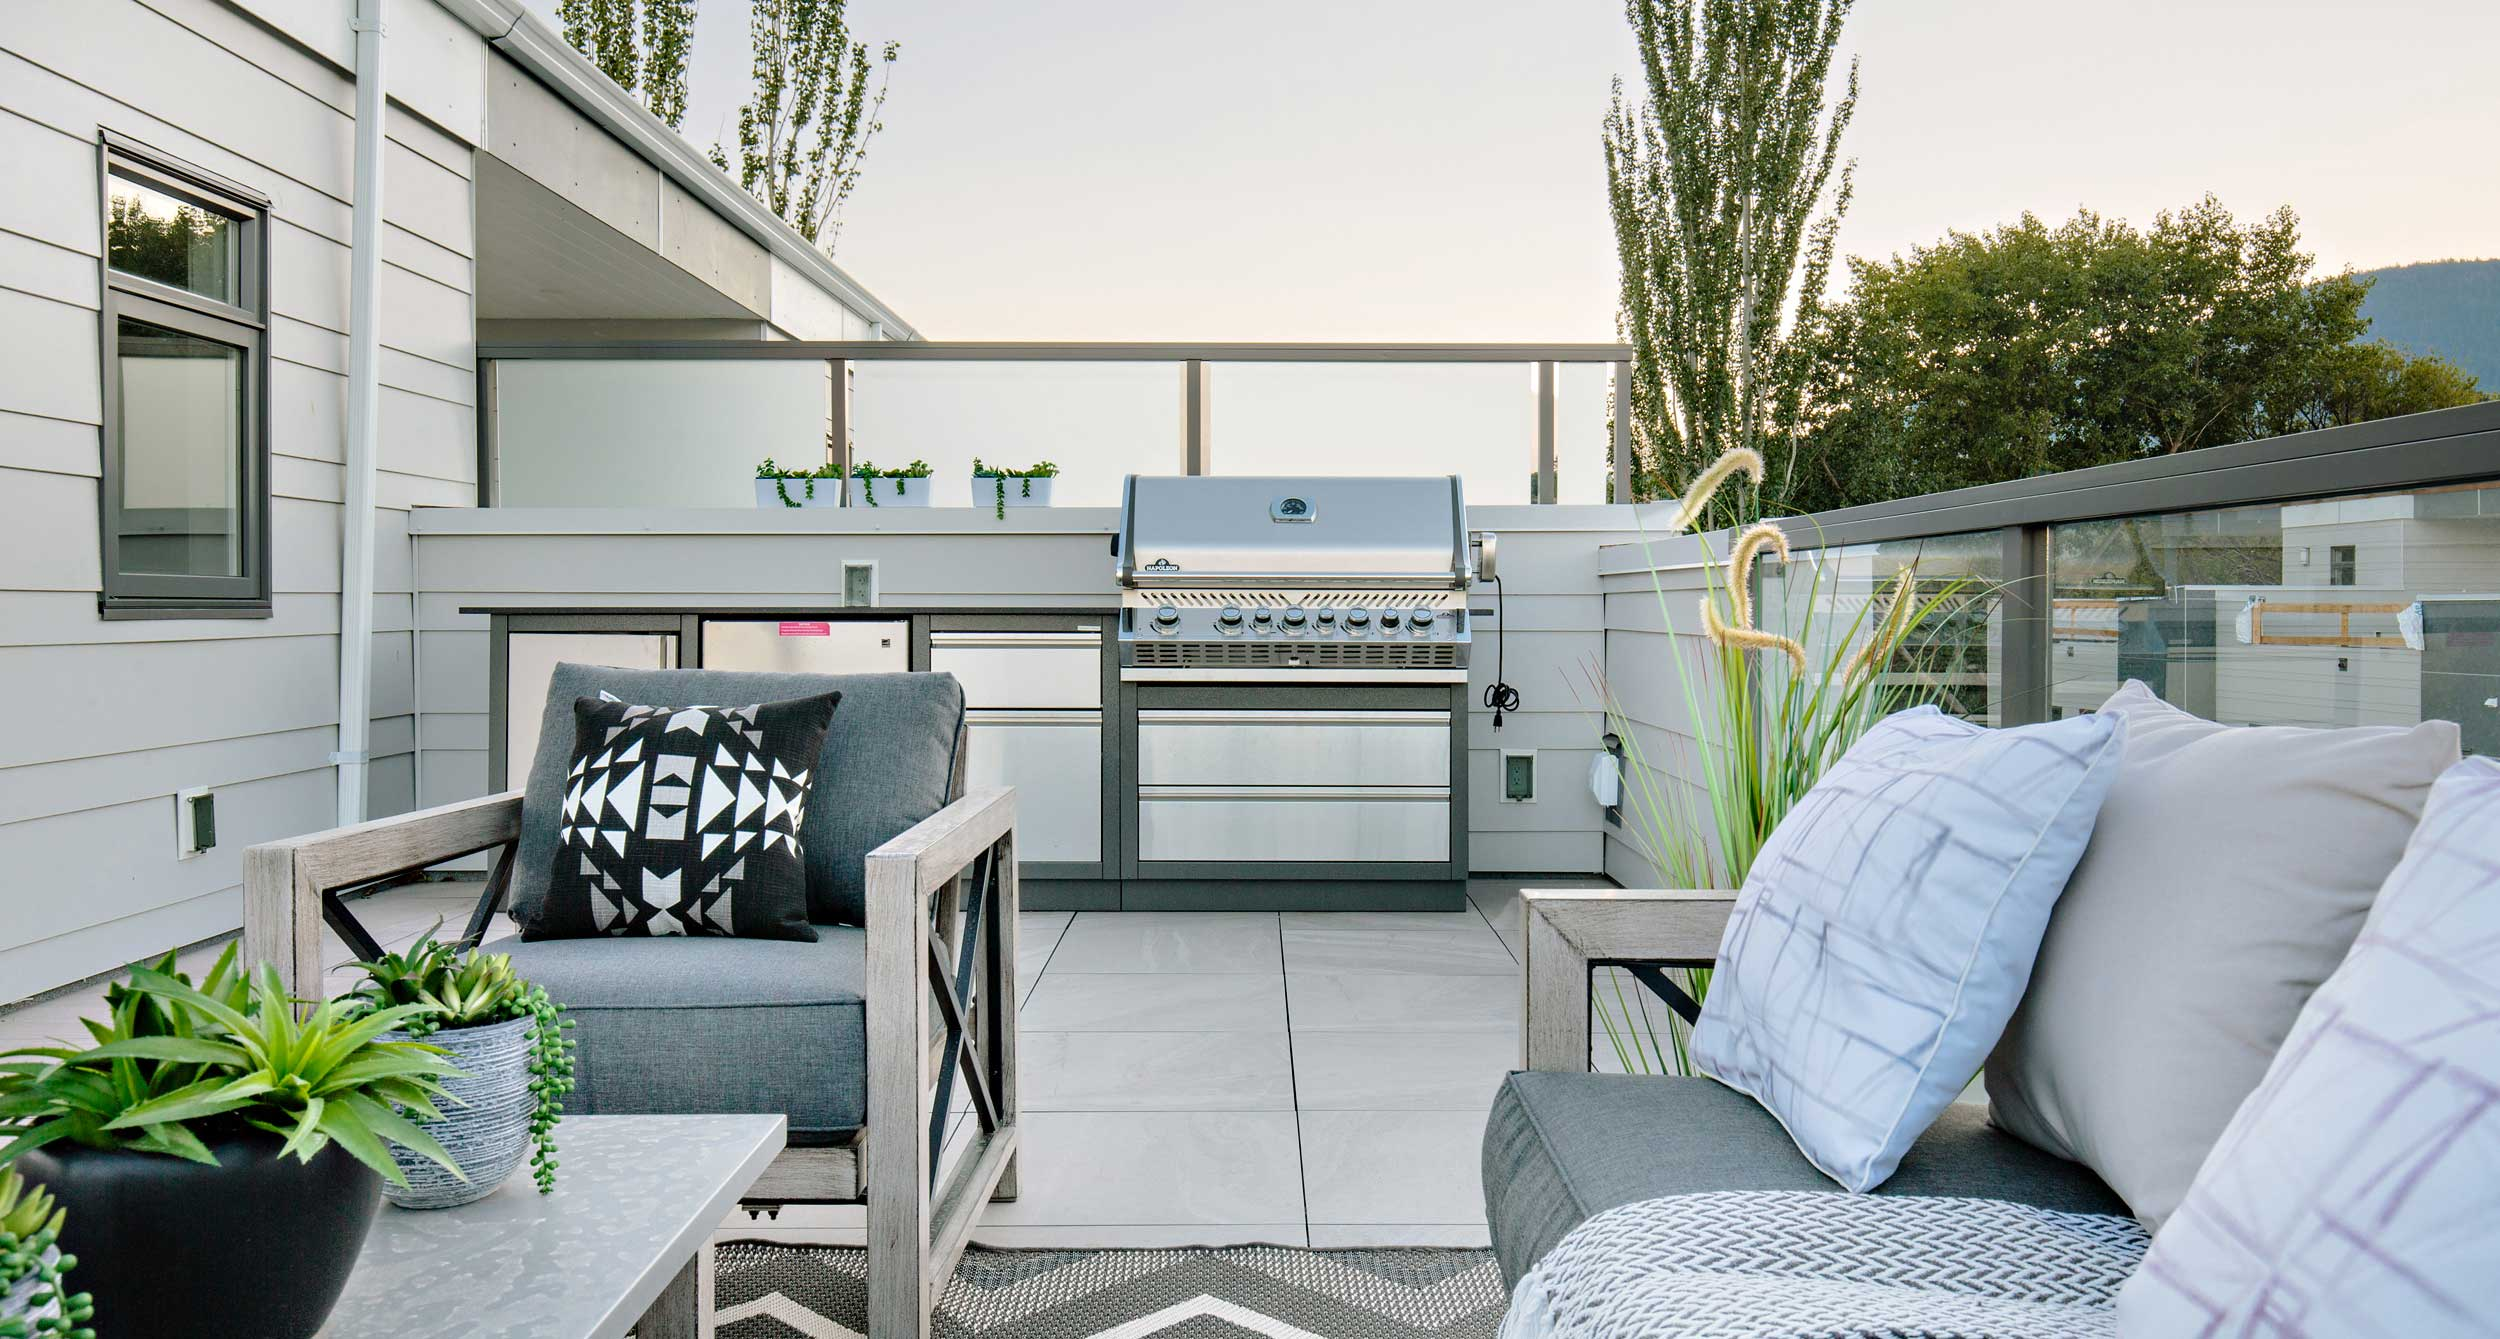 Rooftop features hot tub electrical rough-in; both  rooftop and 2nd floor patio are gas bbq-ready.